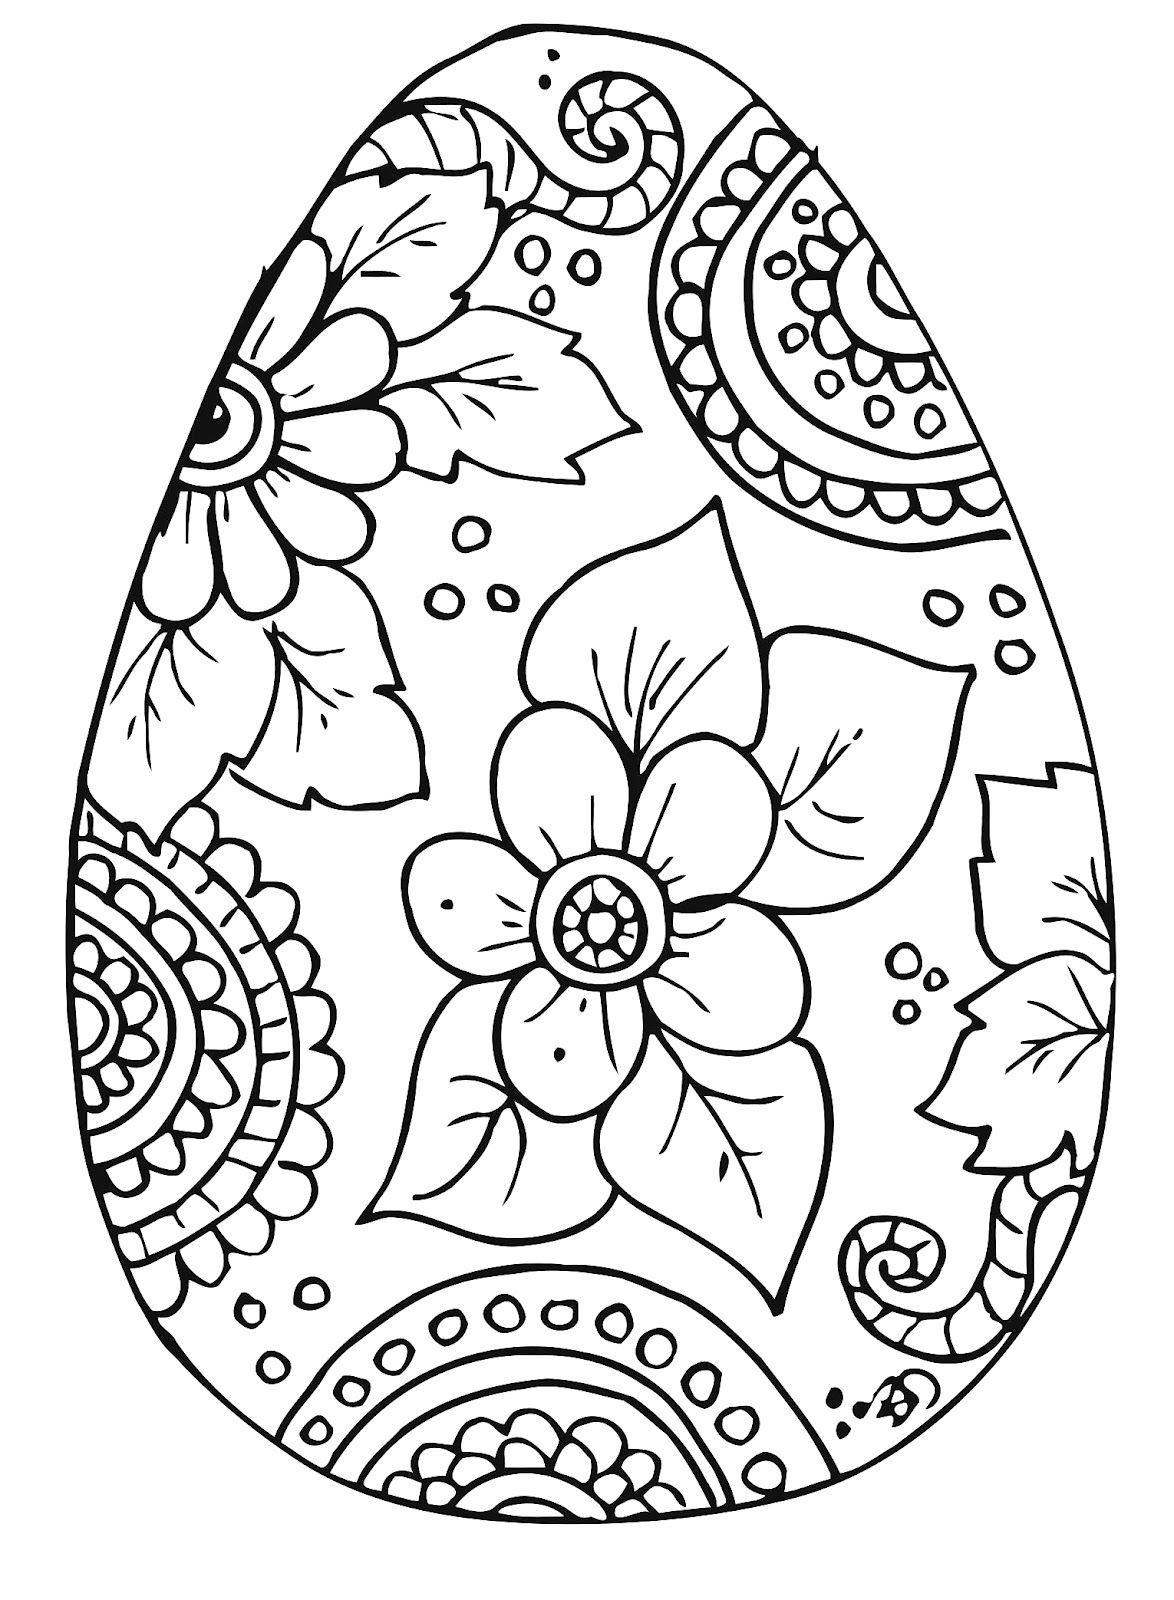 Easteregg | Coloring Pages | Pinterest | Easter, Easter crafts and ...